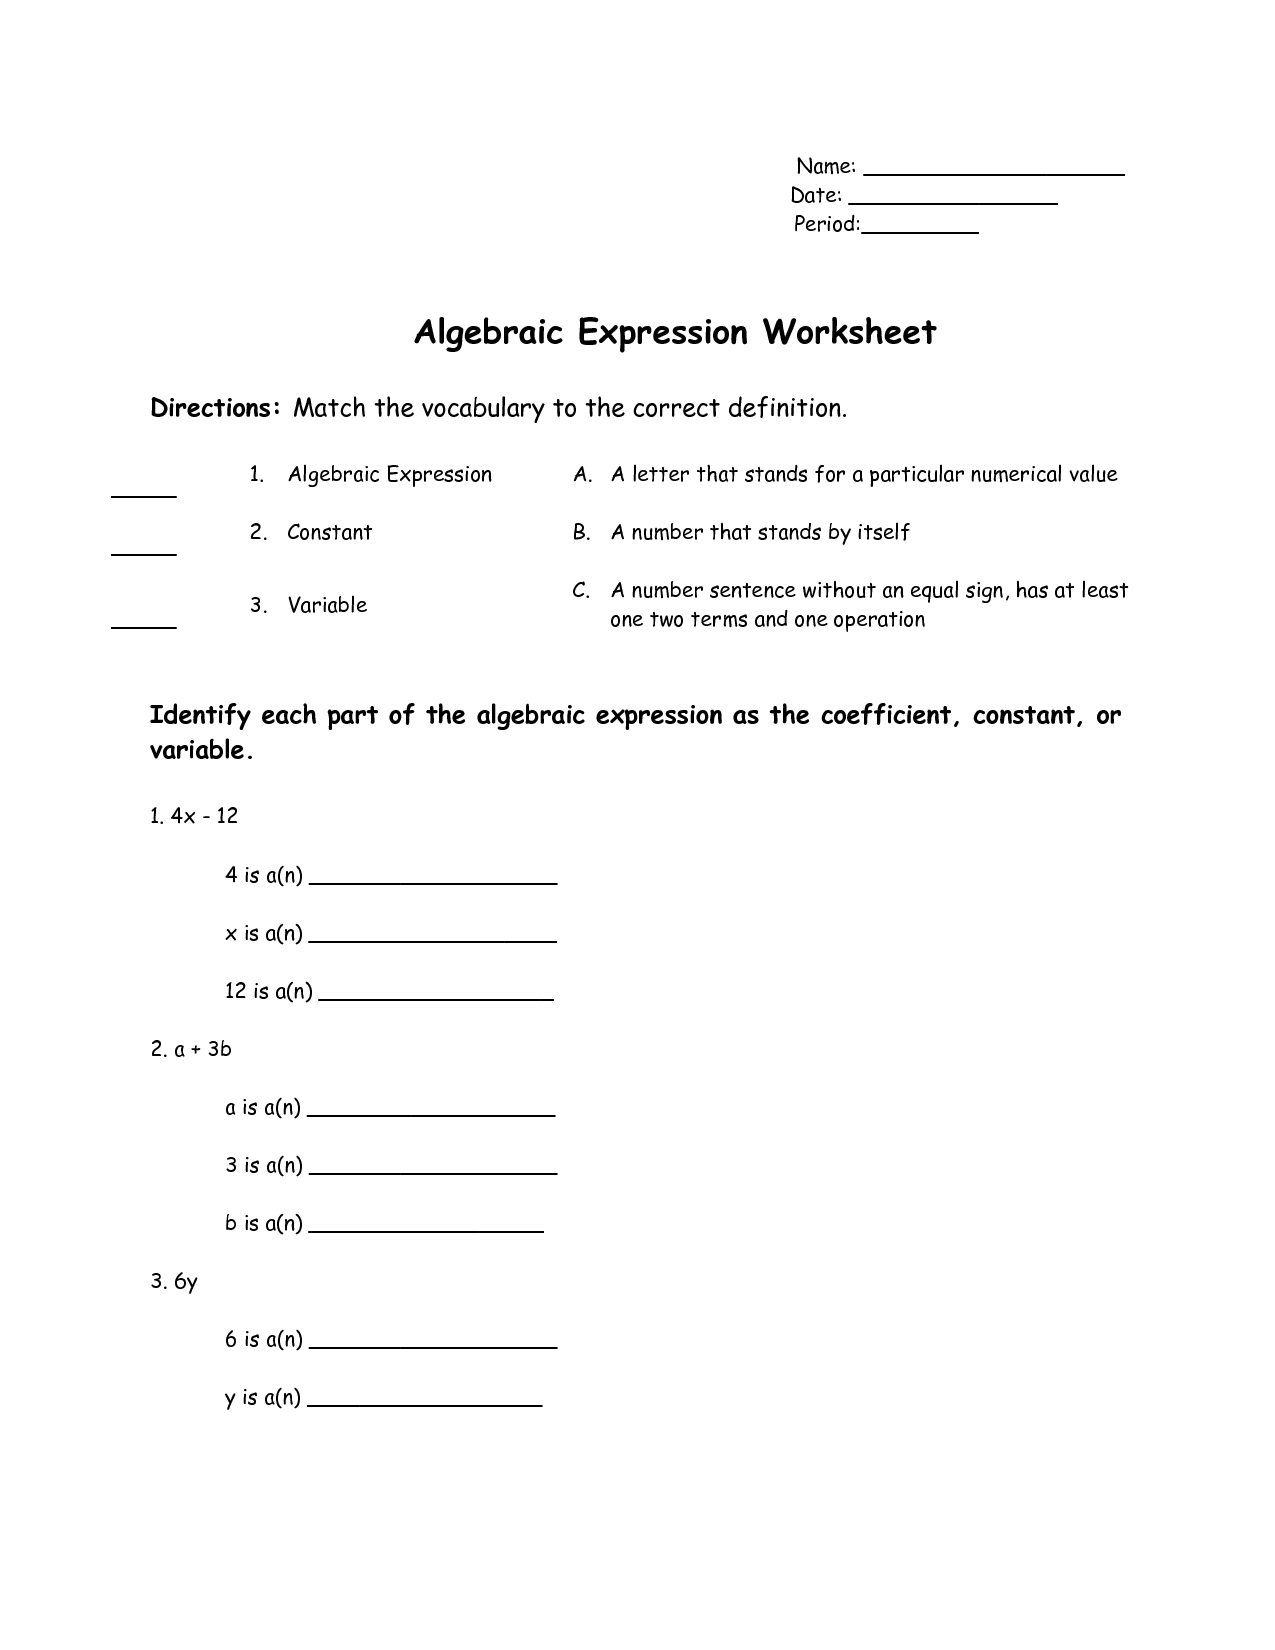 Algebraic Expression In Words